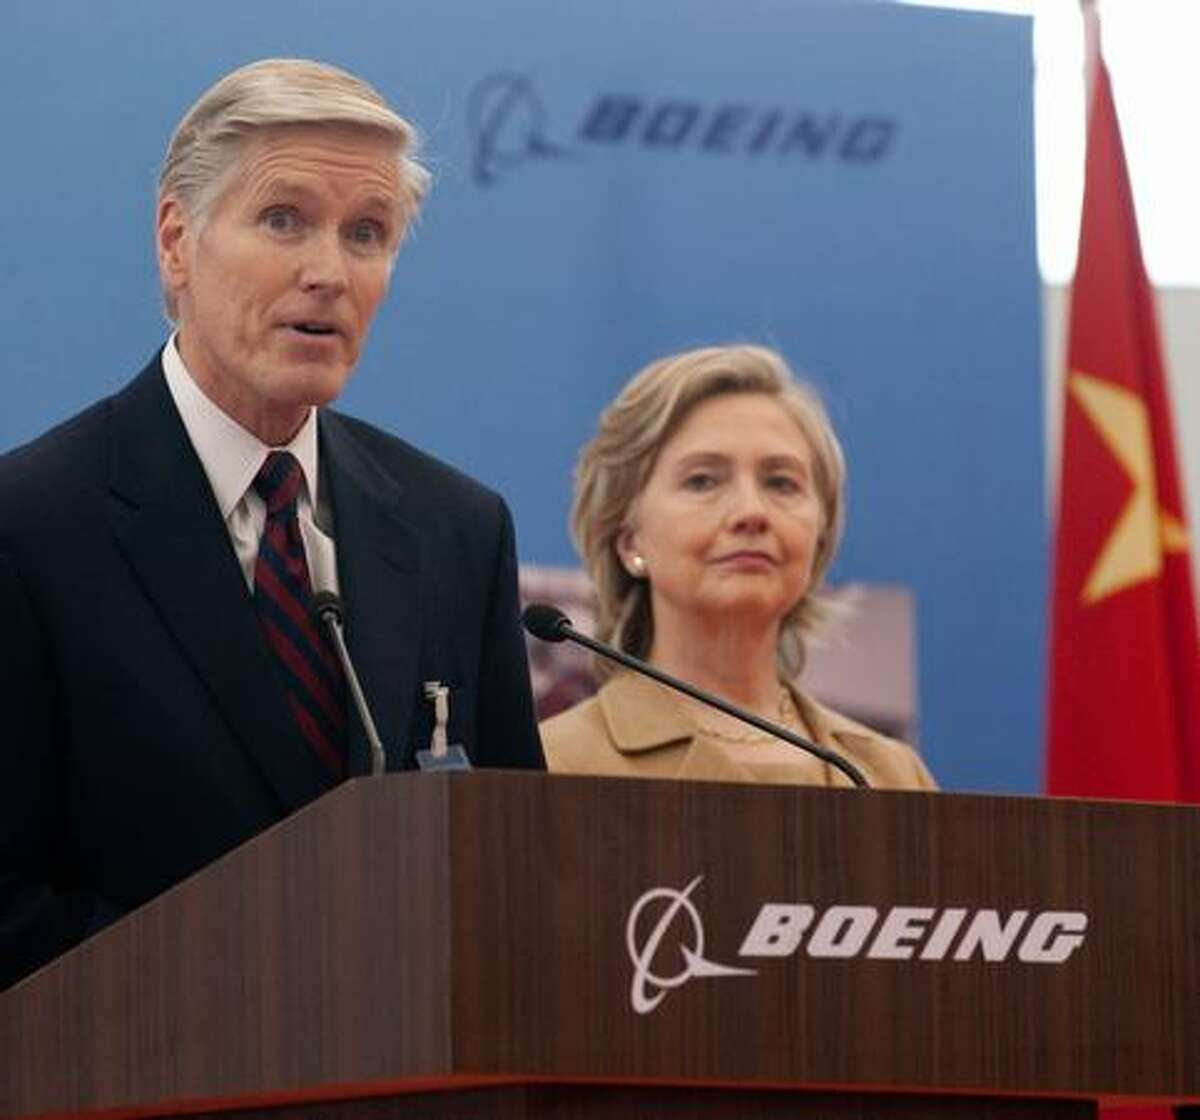 Boeing International President Shephard Hill (left) speaks alongside U.S. Secretary of State Hillary Clinton at the Boeing Maintenance Facility at Pudong International Airport in Shanghai.